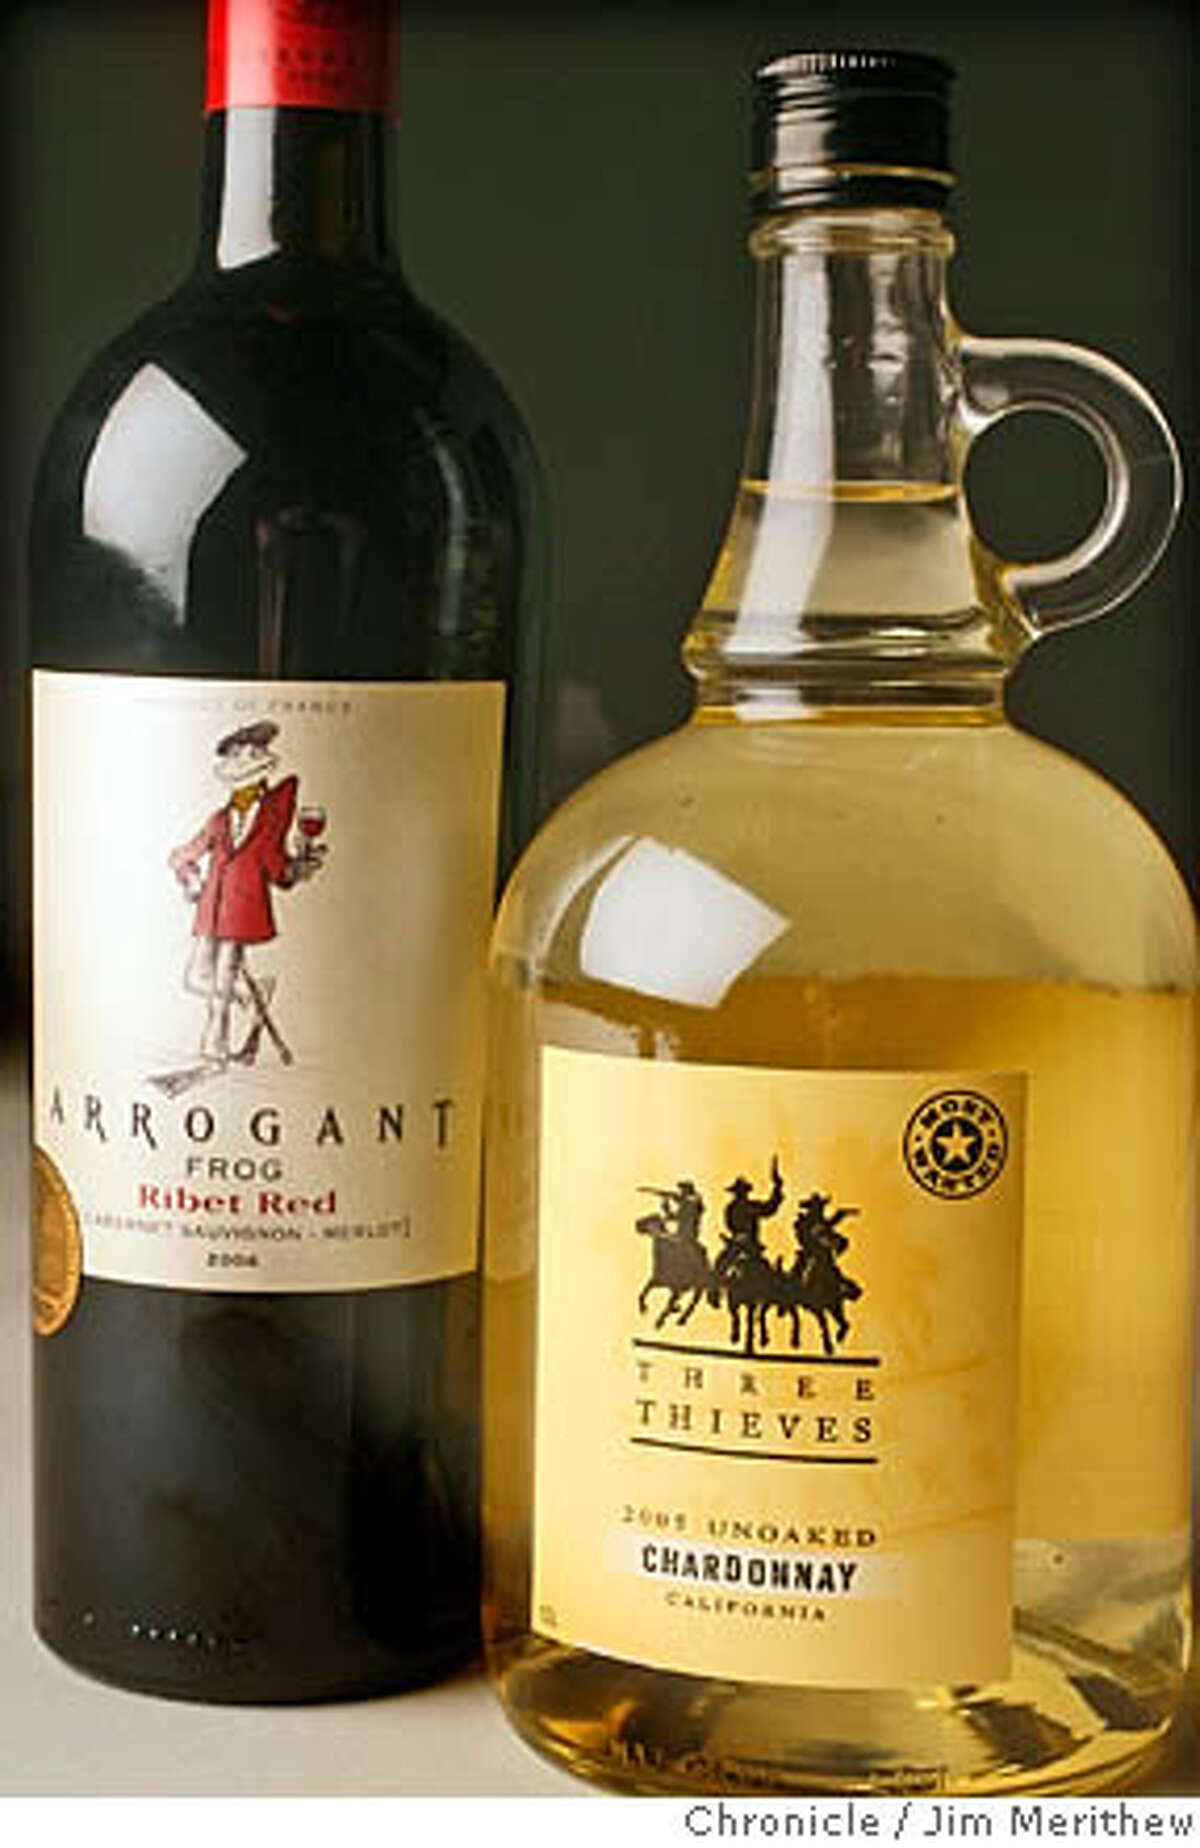 Three Thieves Unoaked Chardonnay, at right, and Arrogant Frog Ribet Red JIM MERITHEW SFC MANDATORY CREDIT FOR PHOTOG AND SAN FRANCISCO CHRONICLE/ -MAGS OUT